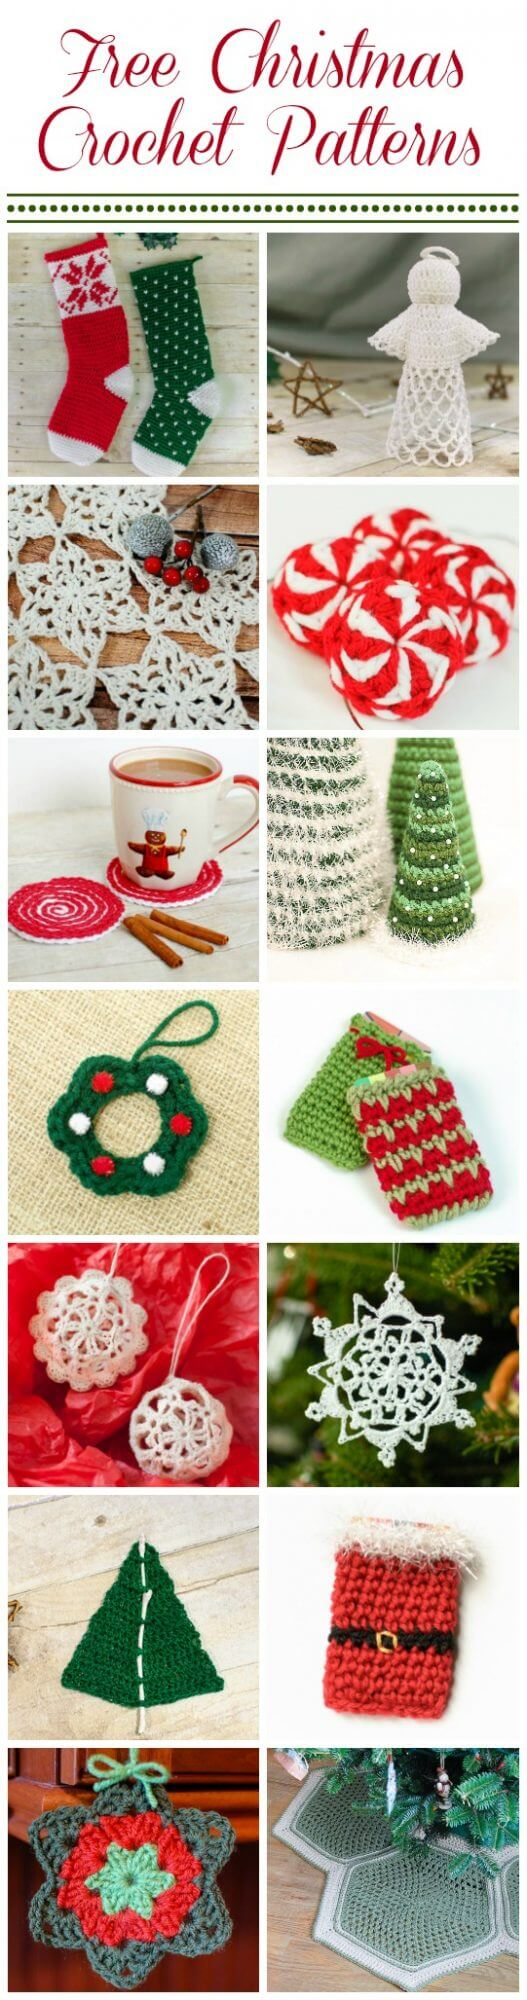 Make it a handmade holiday with these free Christmas crochet patterns! Choose from this selection of pretty ornaments, festive decor, and fun gift ideas. #petalstopicots